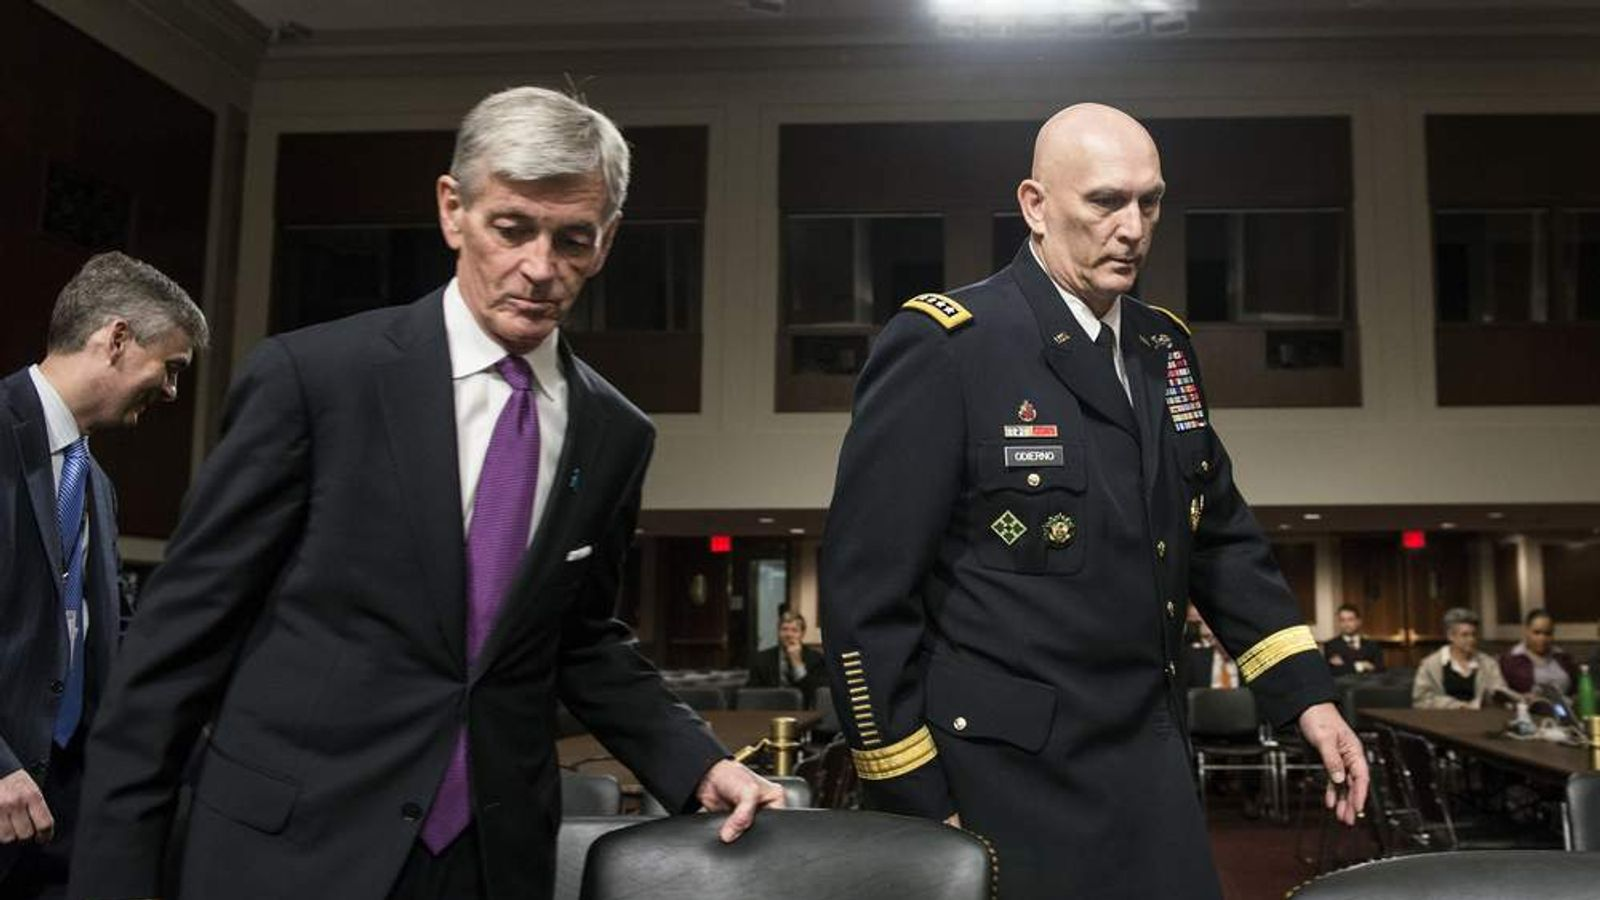 US Army Secretary John McHugh (L) and Army Chief of Staff General Ray Odierno